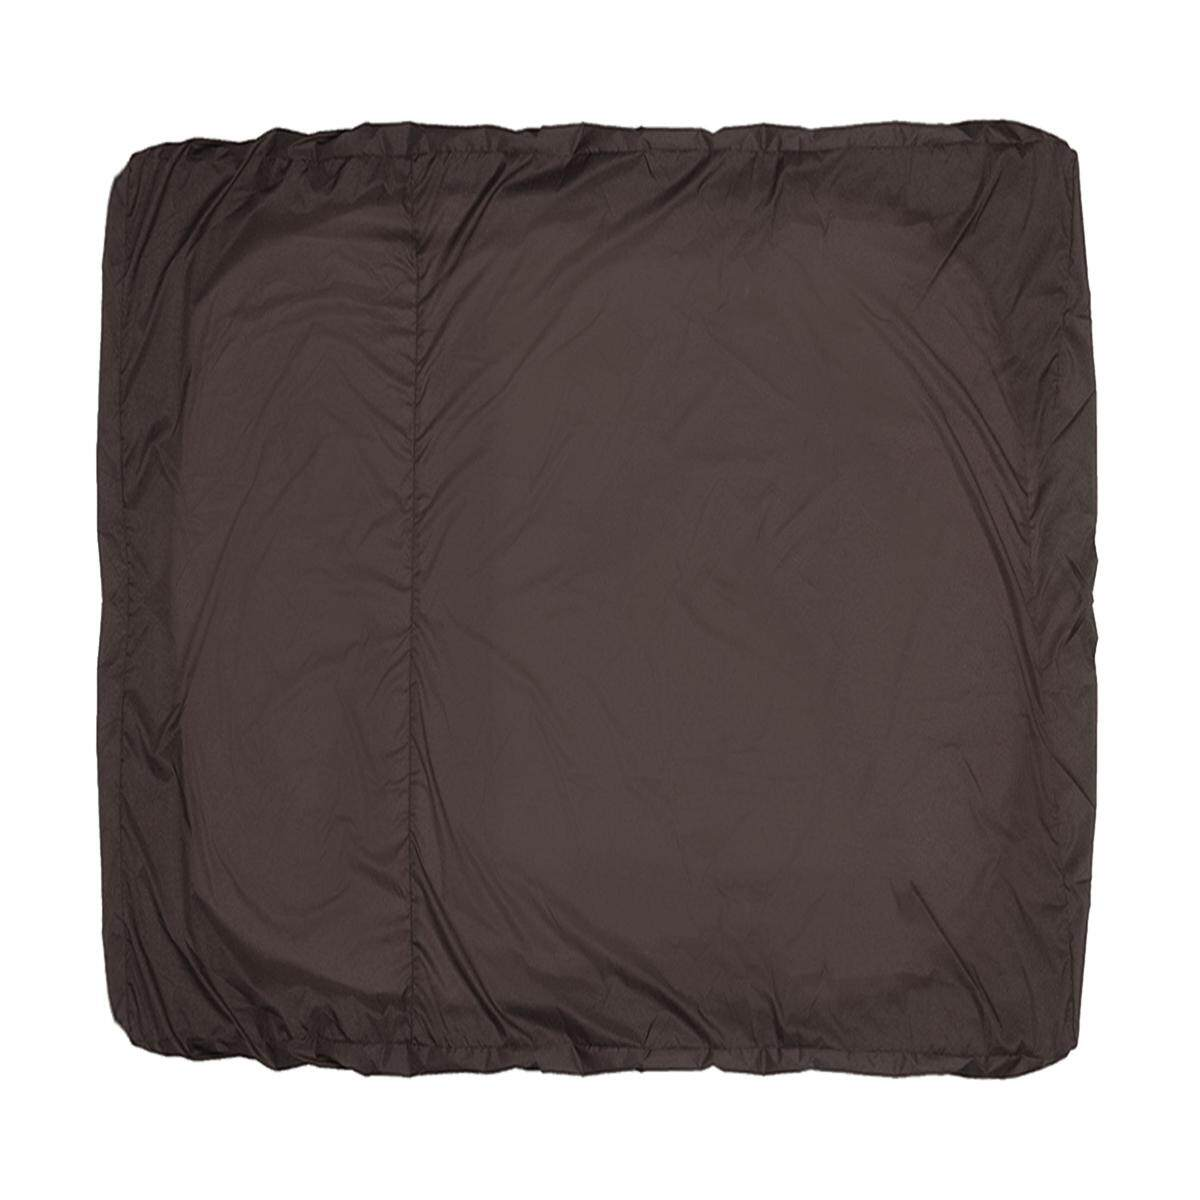 Hot Tub Cover All-Weather Protector - Spa Cover Harsh Weather Guard Brown (236*236*30cm)